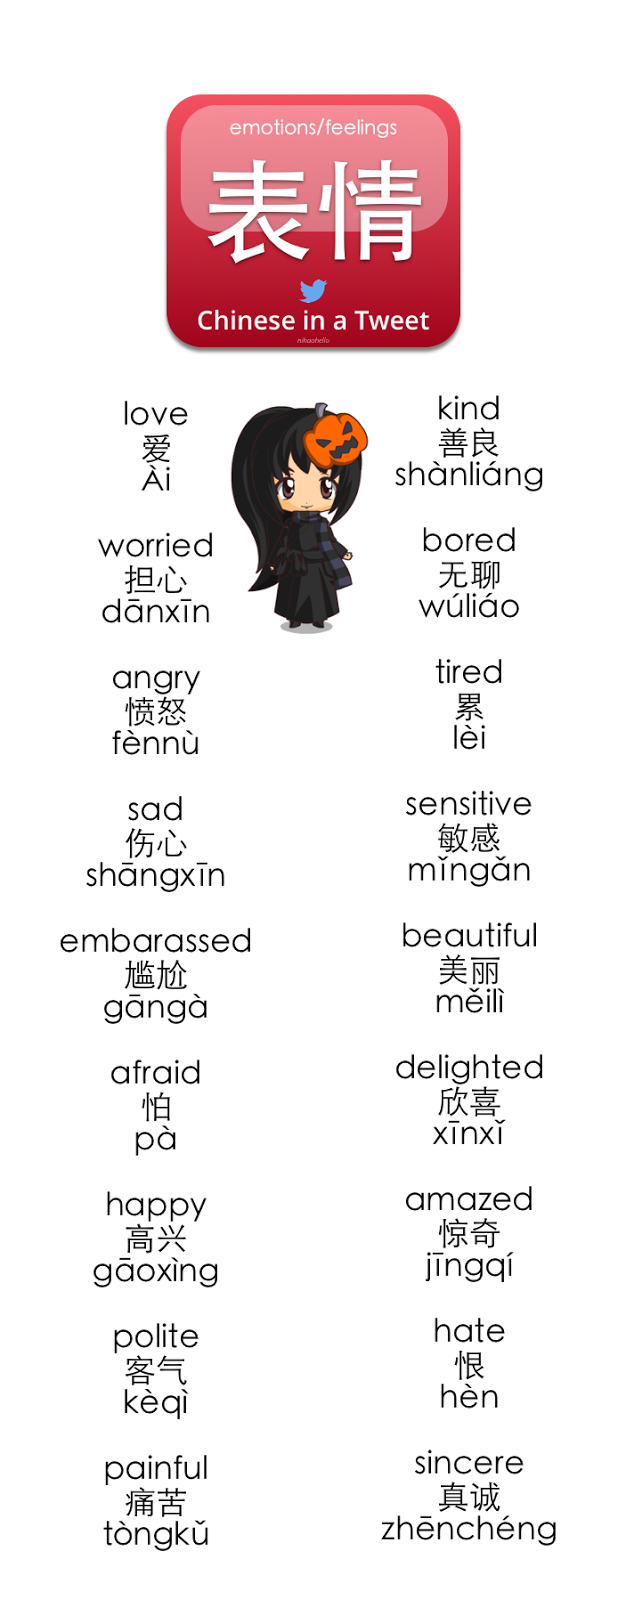 Learn Chinese with NihaoHello: Chinese Vocabulary for Emotions/Feelings http://nihaohello.blogspot.com.ee/2015/10/chinese-vocabulary-for-emotionsfeelings.html